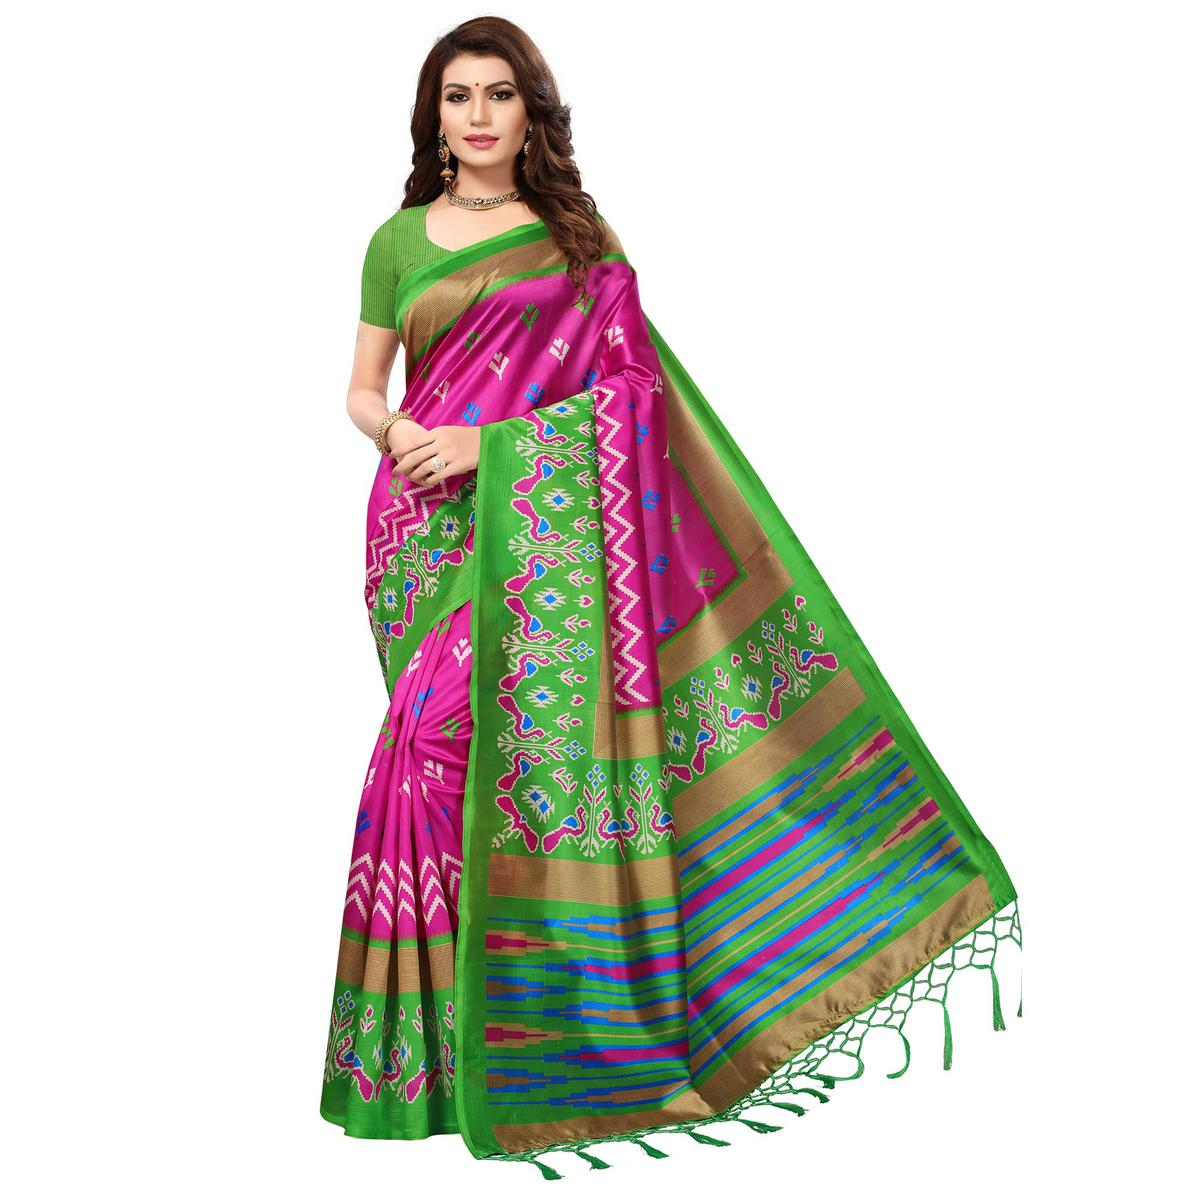 Charming Pink-Green Colored Festive Wear Printed Mysore Art Silk Saree